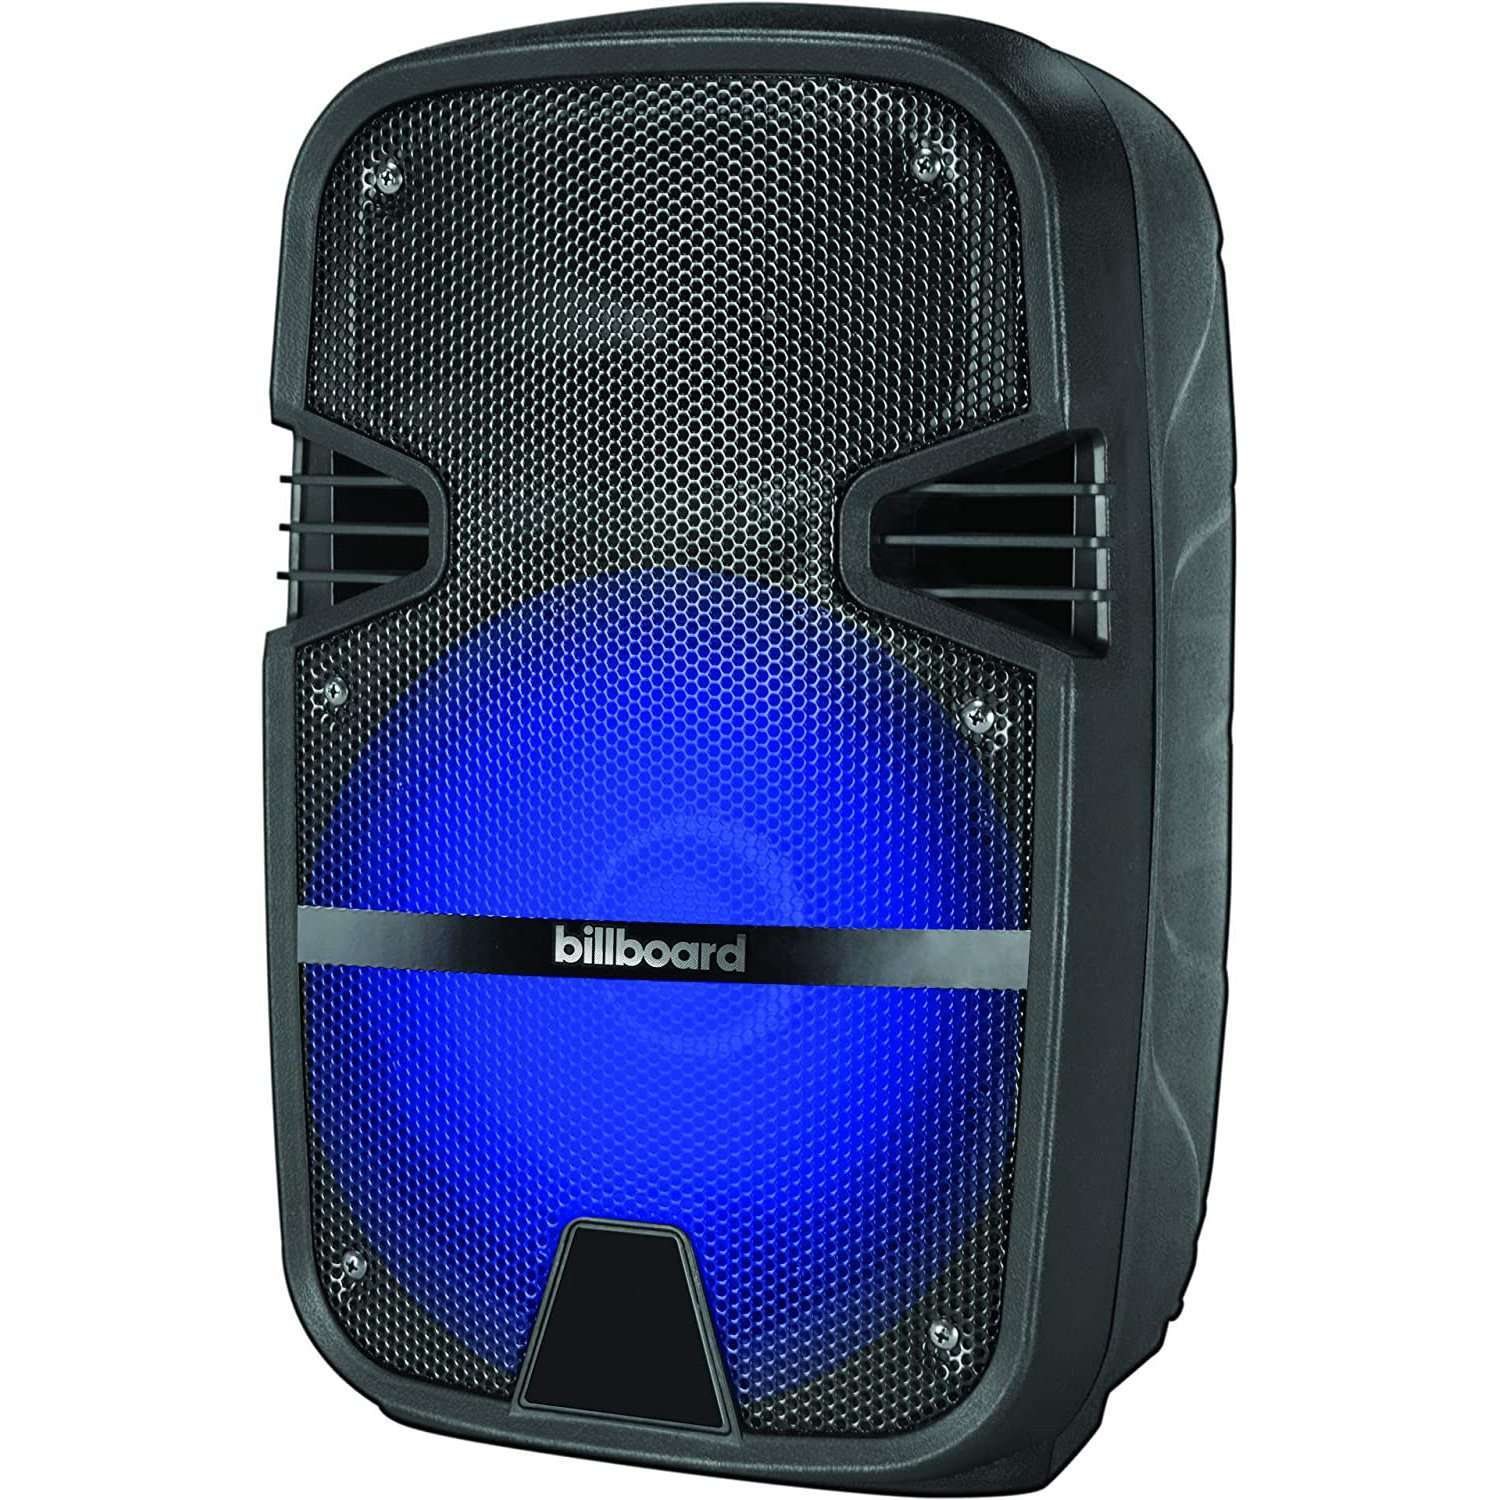 "Billboard PS-3 8"" Rechargeable Bluetooth Party Speaker with USB/Micro SD/AUX/FM Radio and Colored LED Lights"